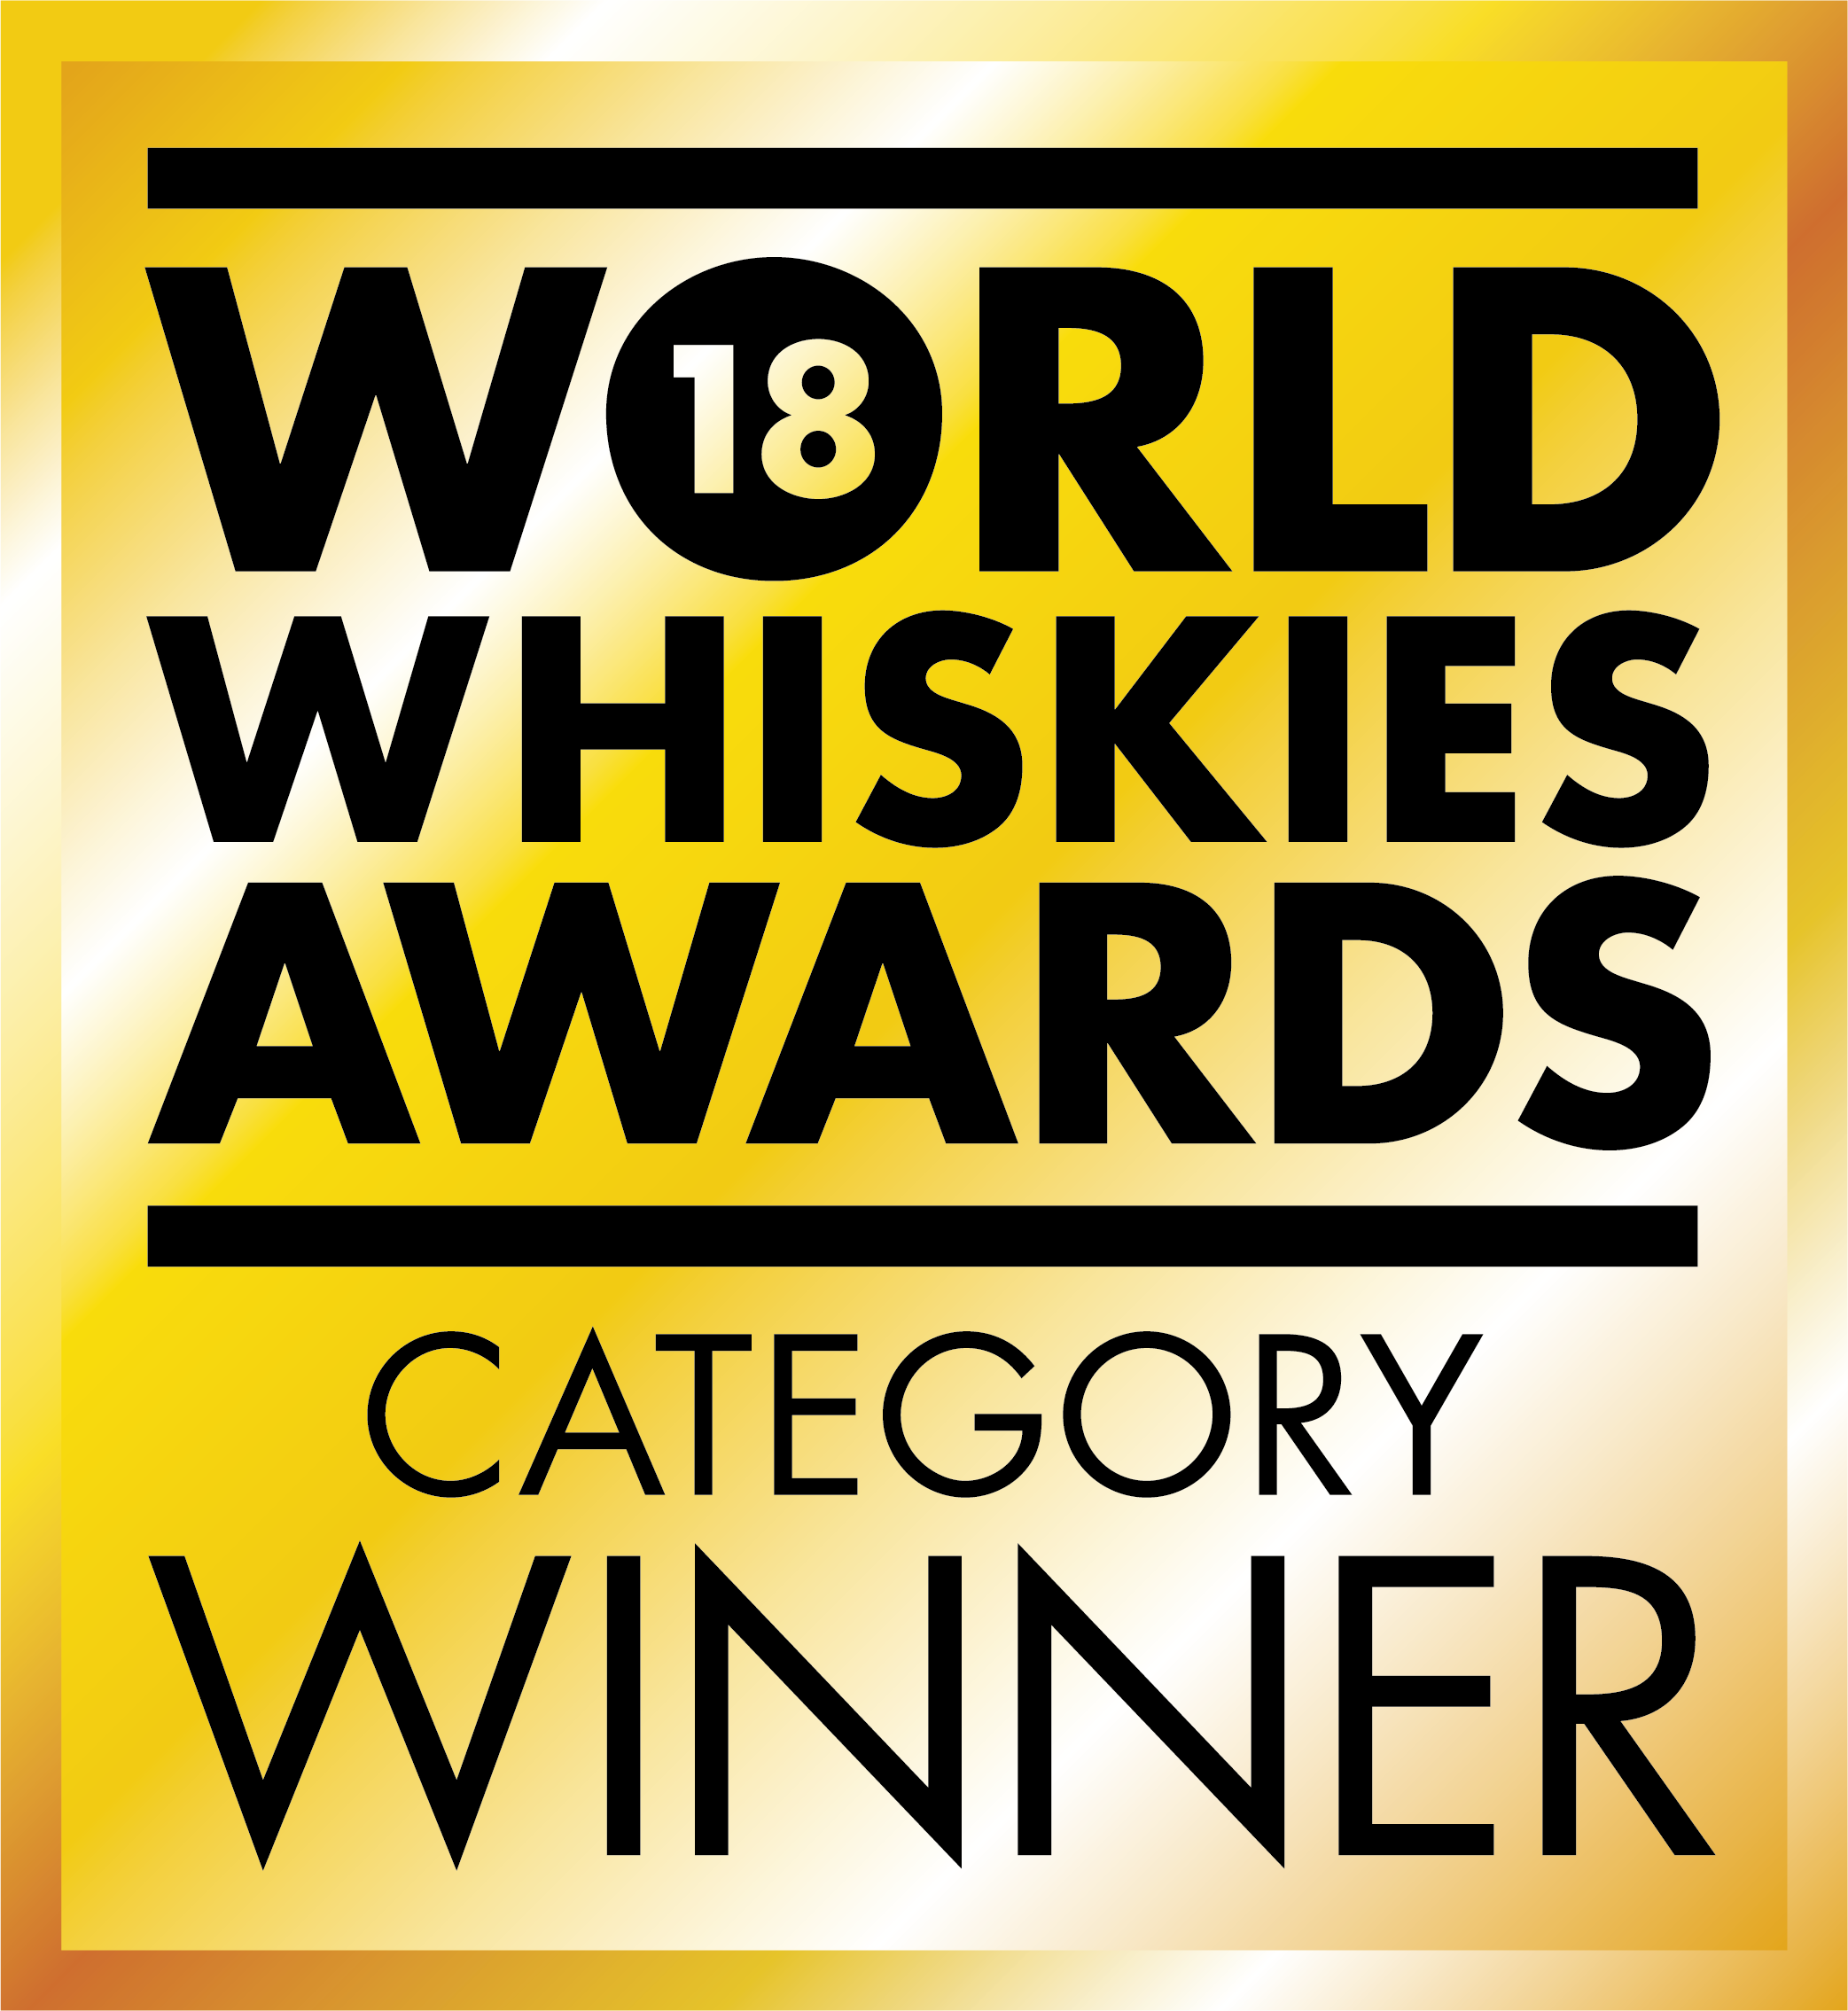 World Whiskies Awards 2018 Category Winner